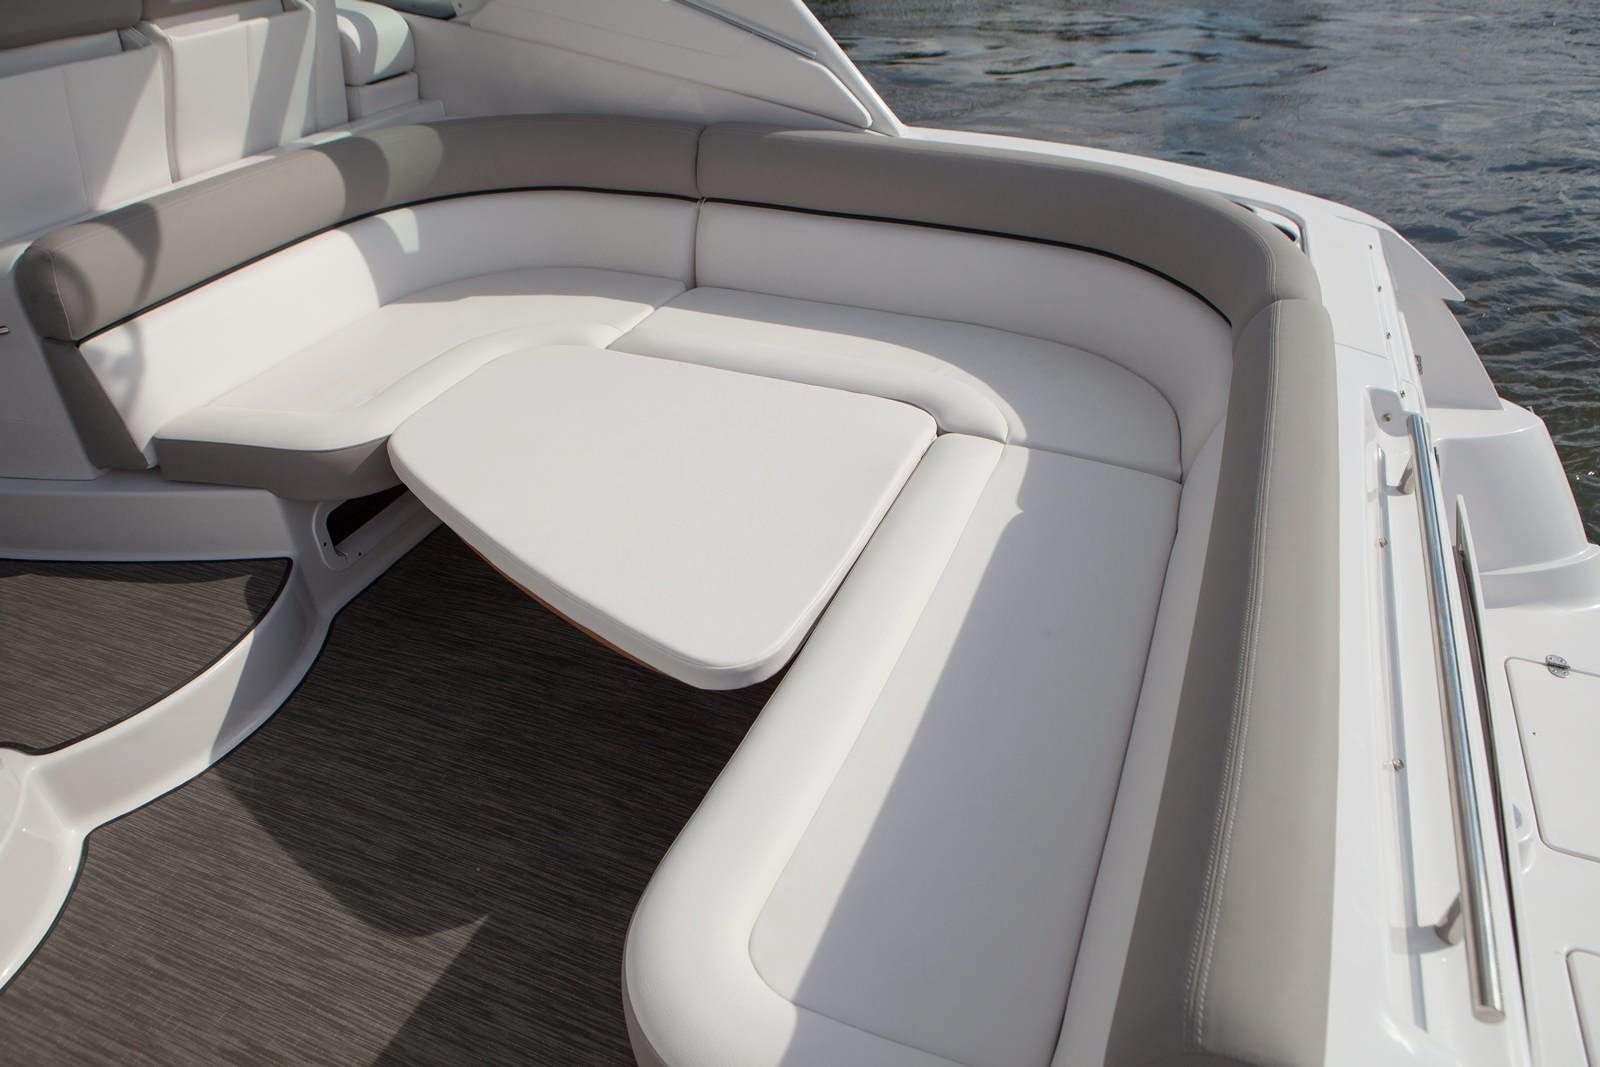 יאכטה Four Winns V375 - Four Winns V375 - Stream Yachts